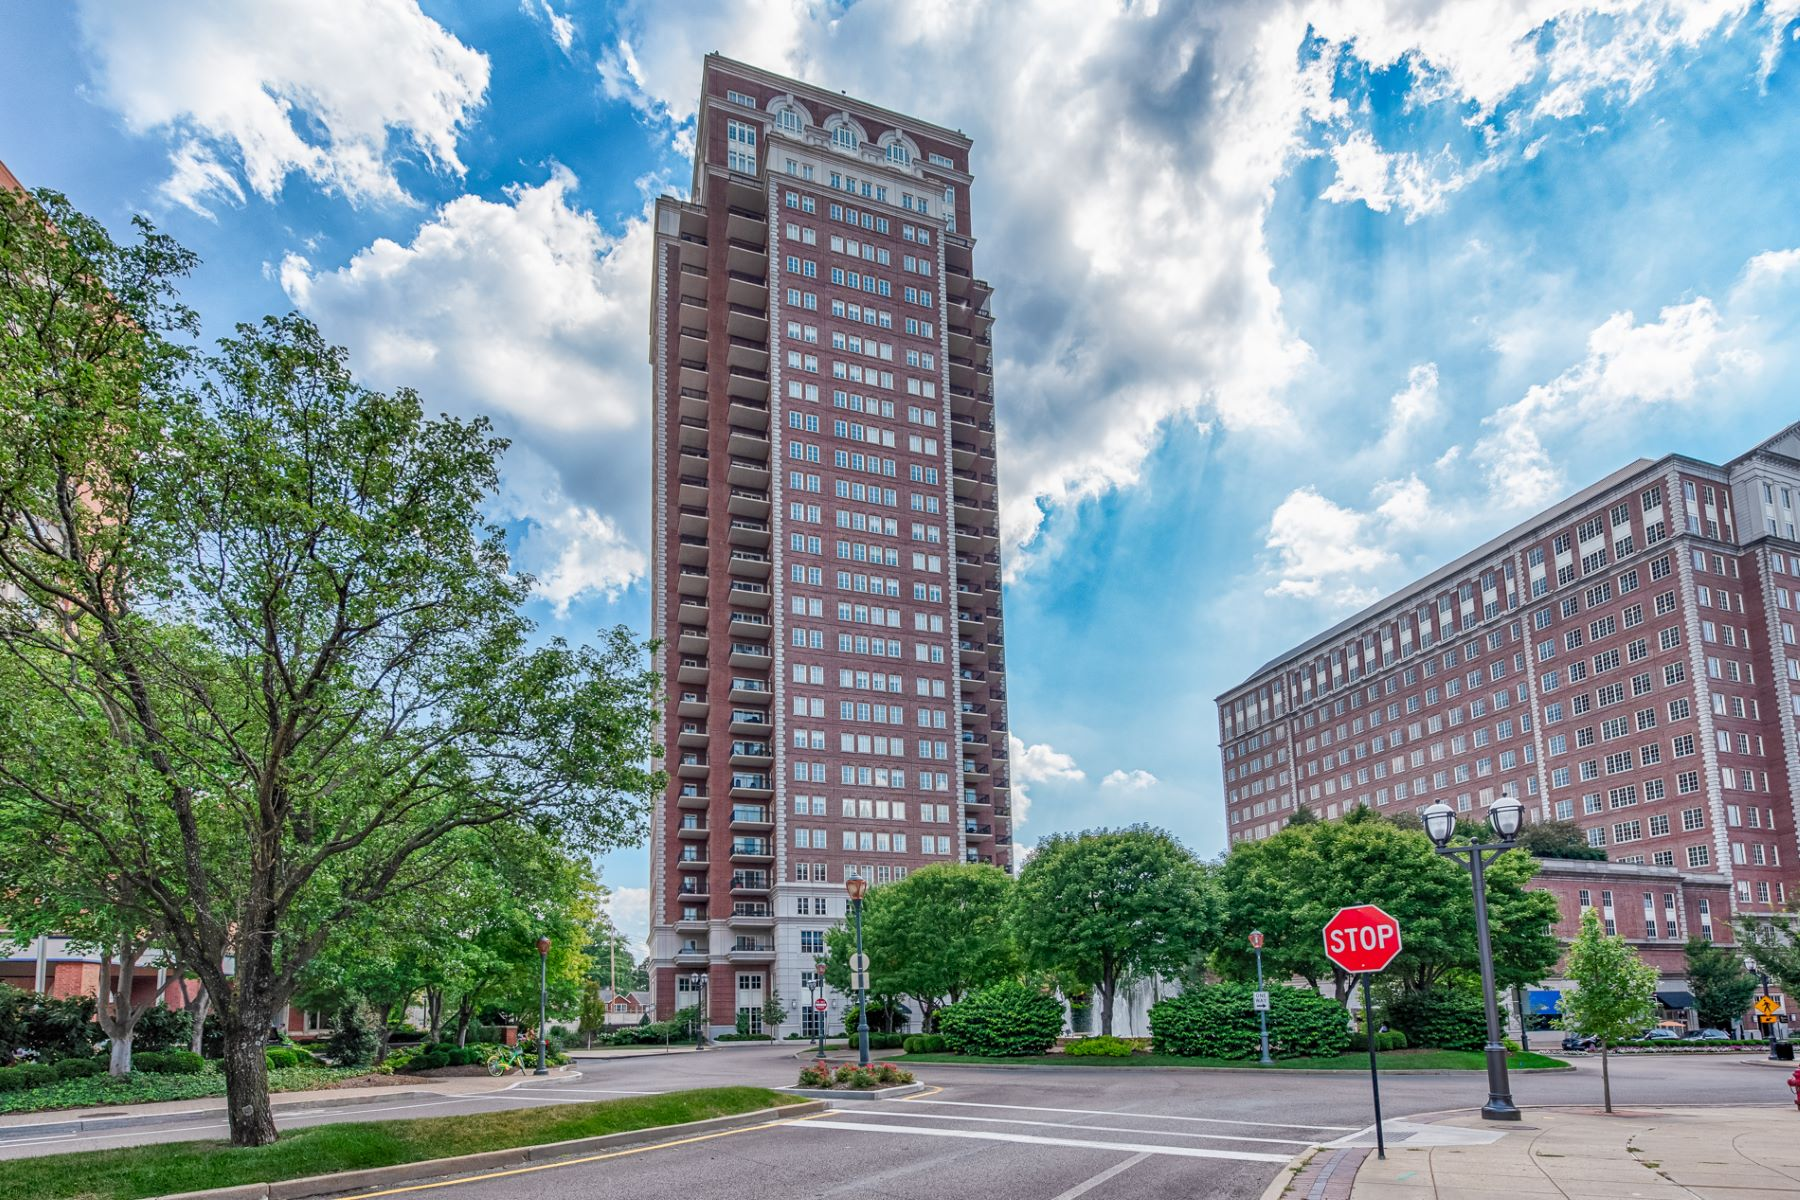 Condominium for Sale at Carondelet Plaza 150 Carondelet Plaza # 501 St. Louis, Missouri 63105 United States